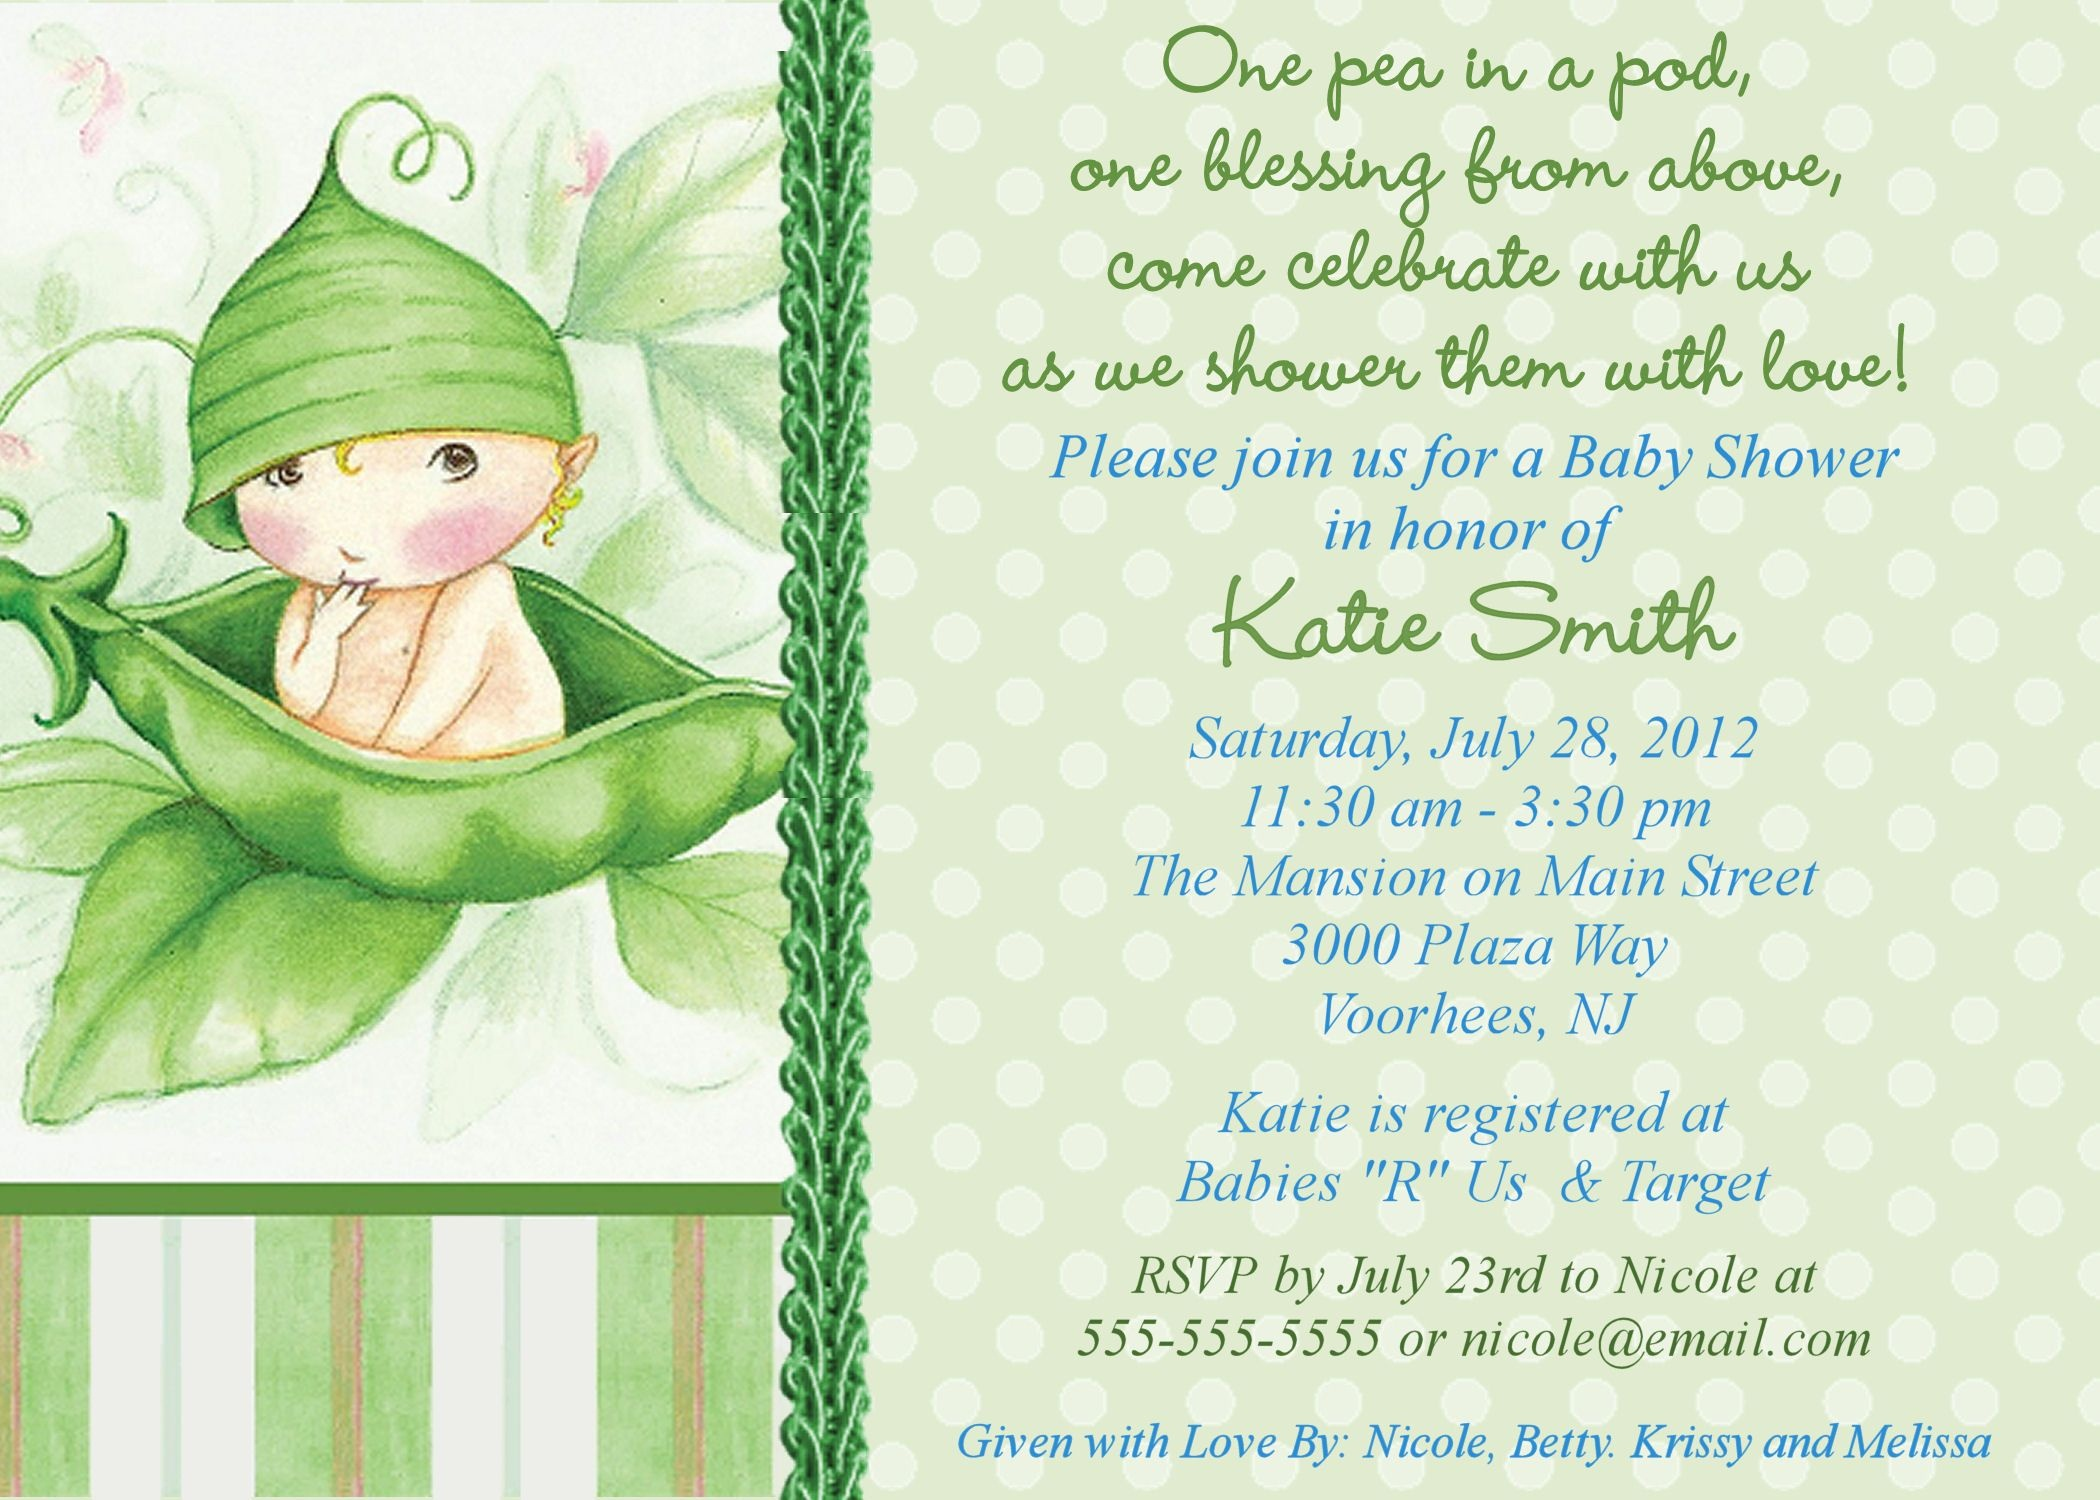 Free Online Baby Shower Invitations | Baby Shower Invitation Sample - Free Baby Shower Invitation Maker Online Printable